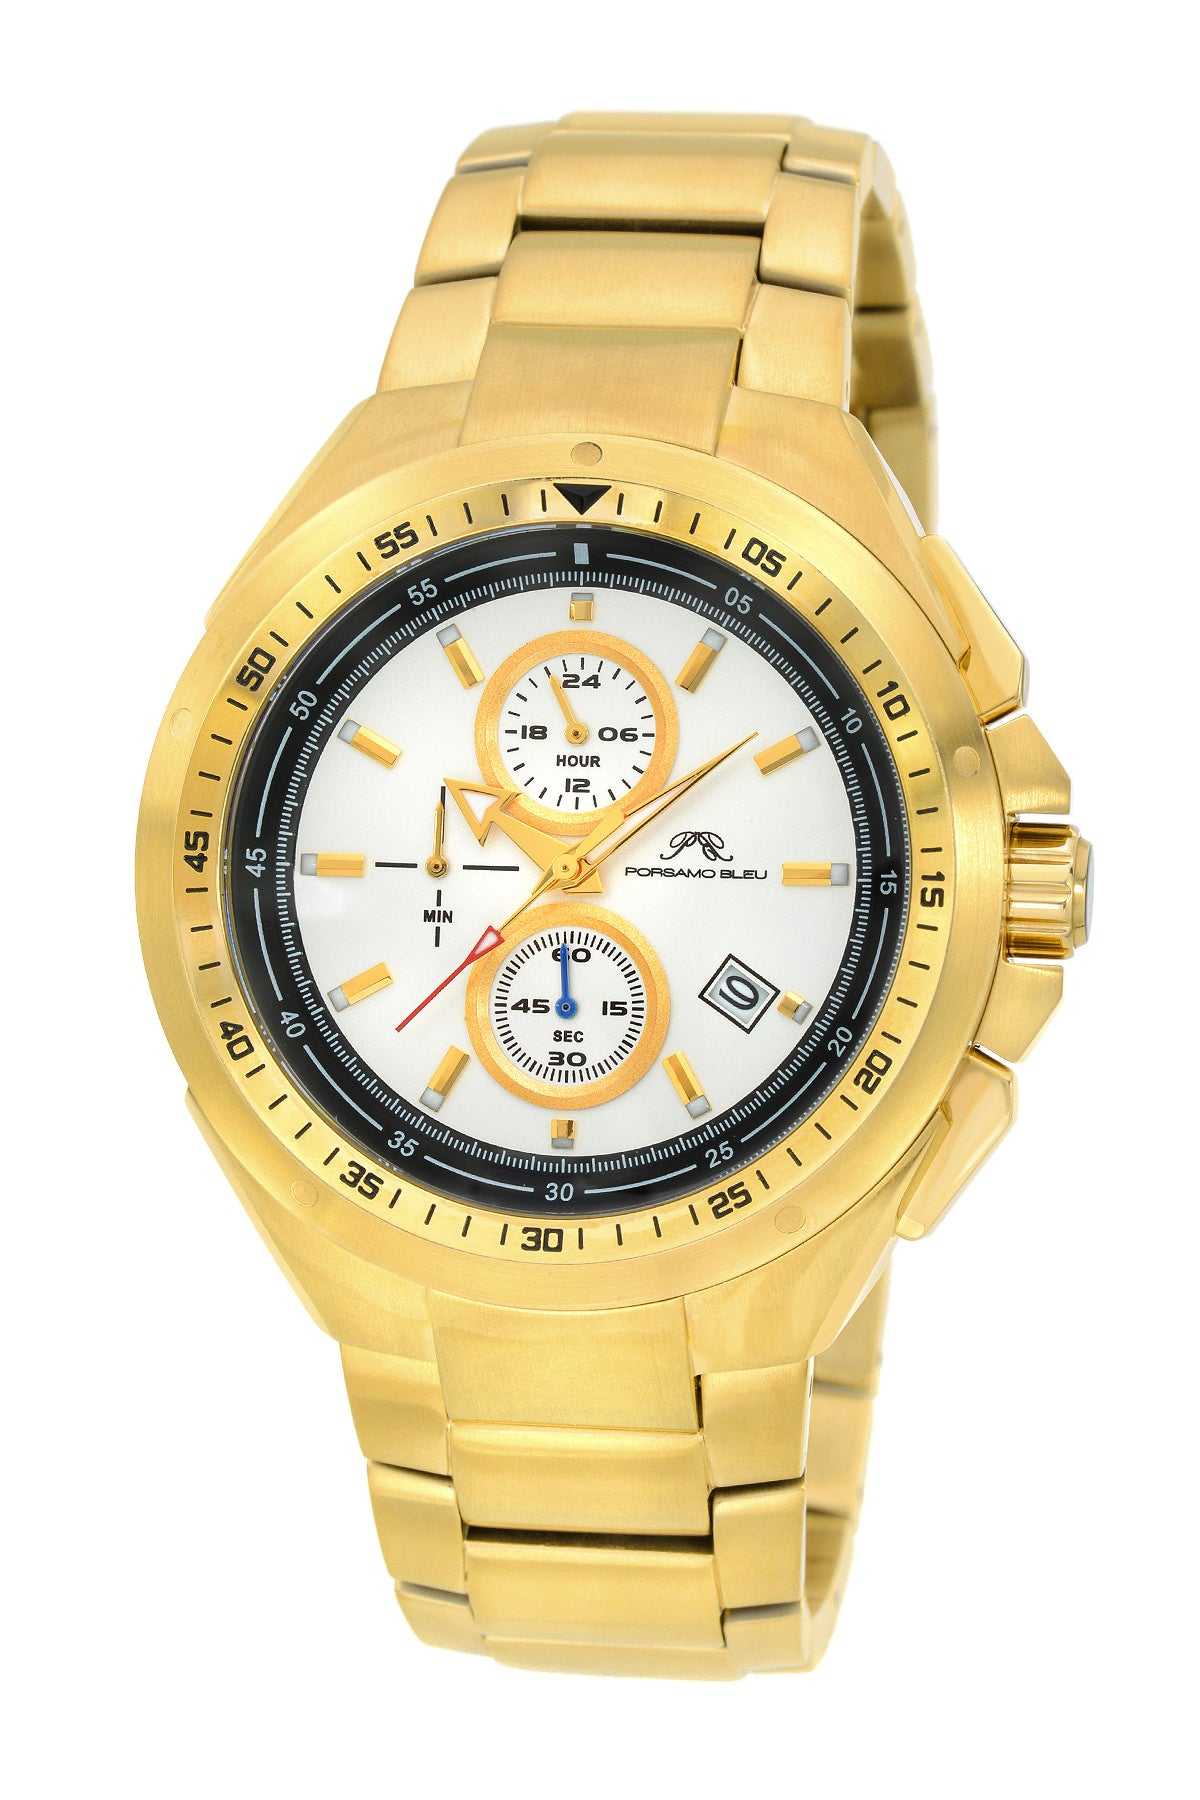 Porsamo Bleu Damien luxury chronograph men's stainless steel watch, gold 311BDAS